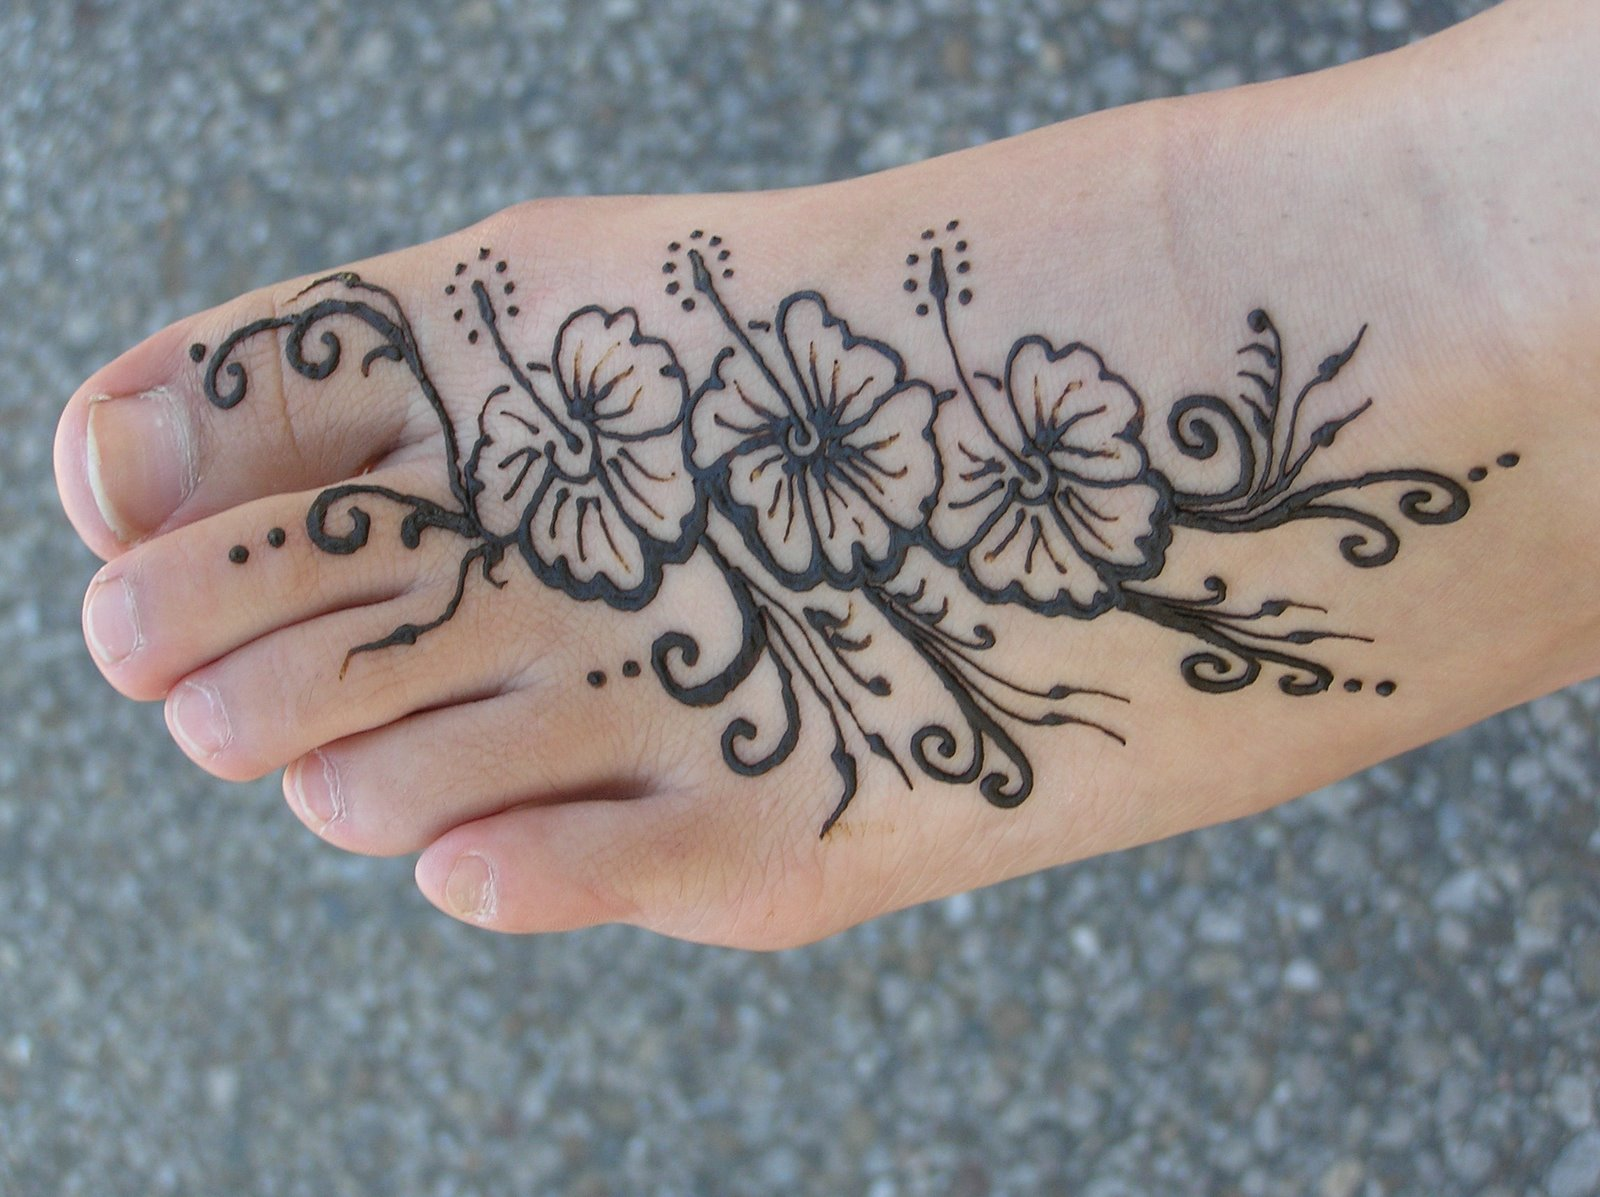 Beautiful Henna Tattoo Designs For Your Wrist: Hairstyles 2012: Beautiful Rose Tattoo Design For Women